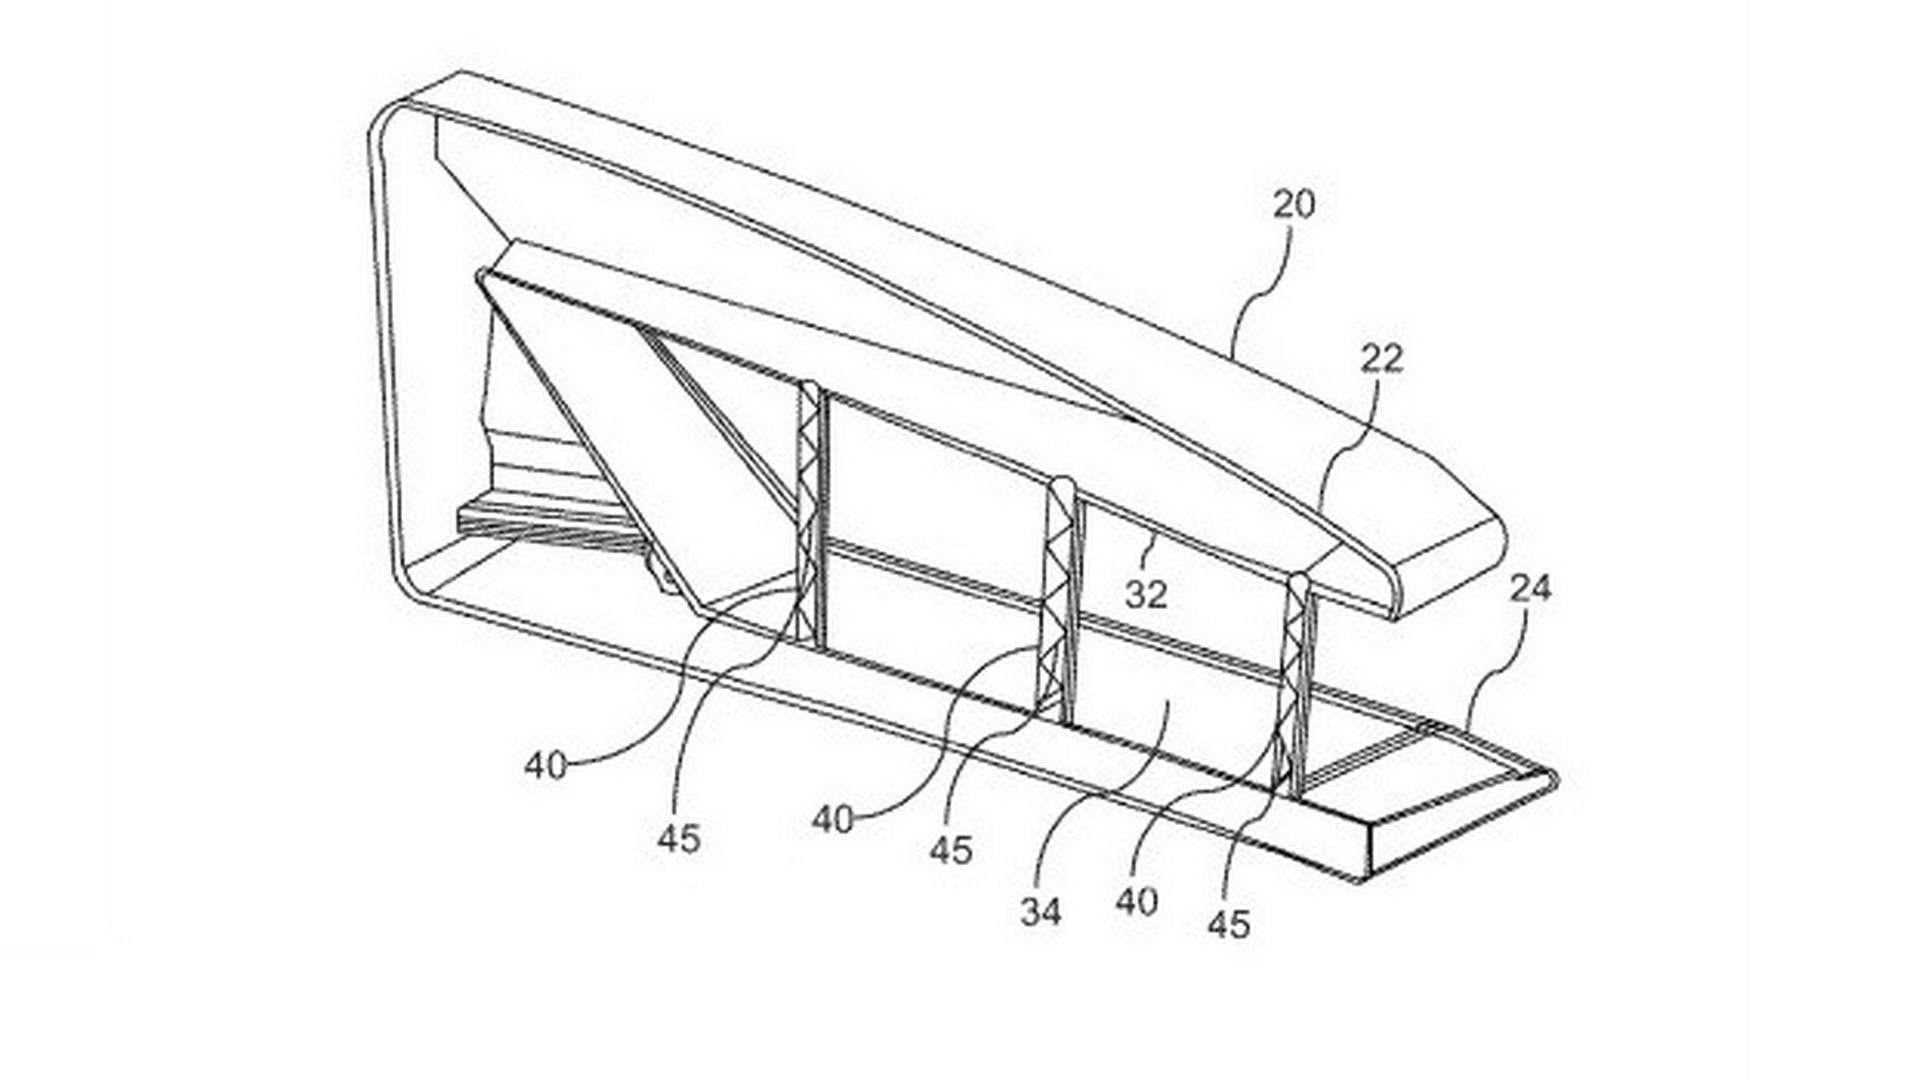 Honda Uses Nsx Images In Patent For New Air Dam Is It For